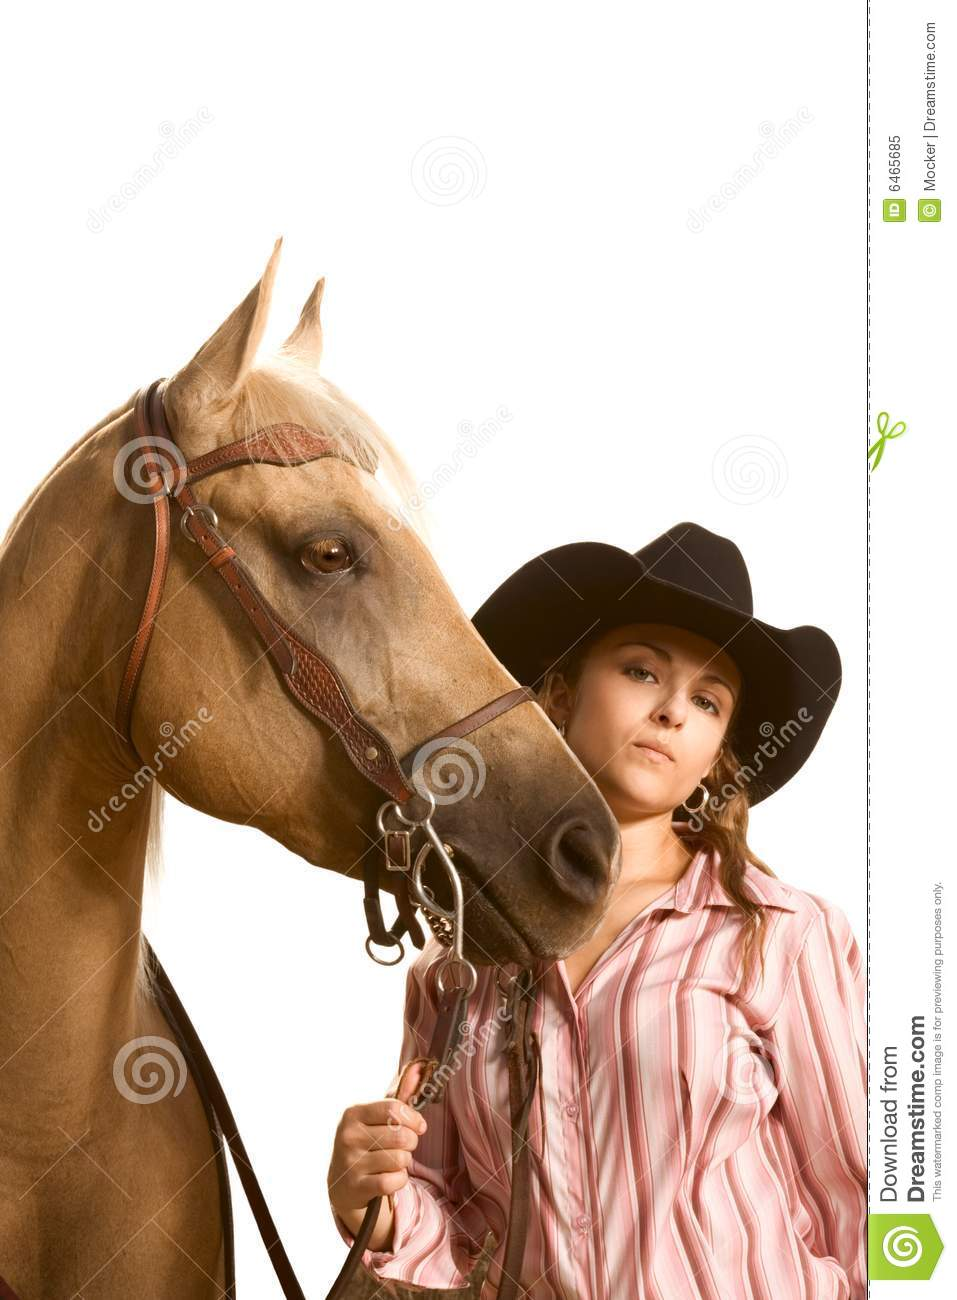 Bridle cowgirl hat her holding horse